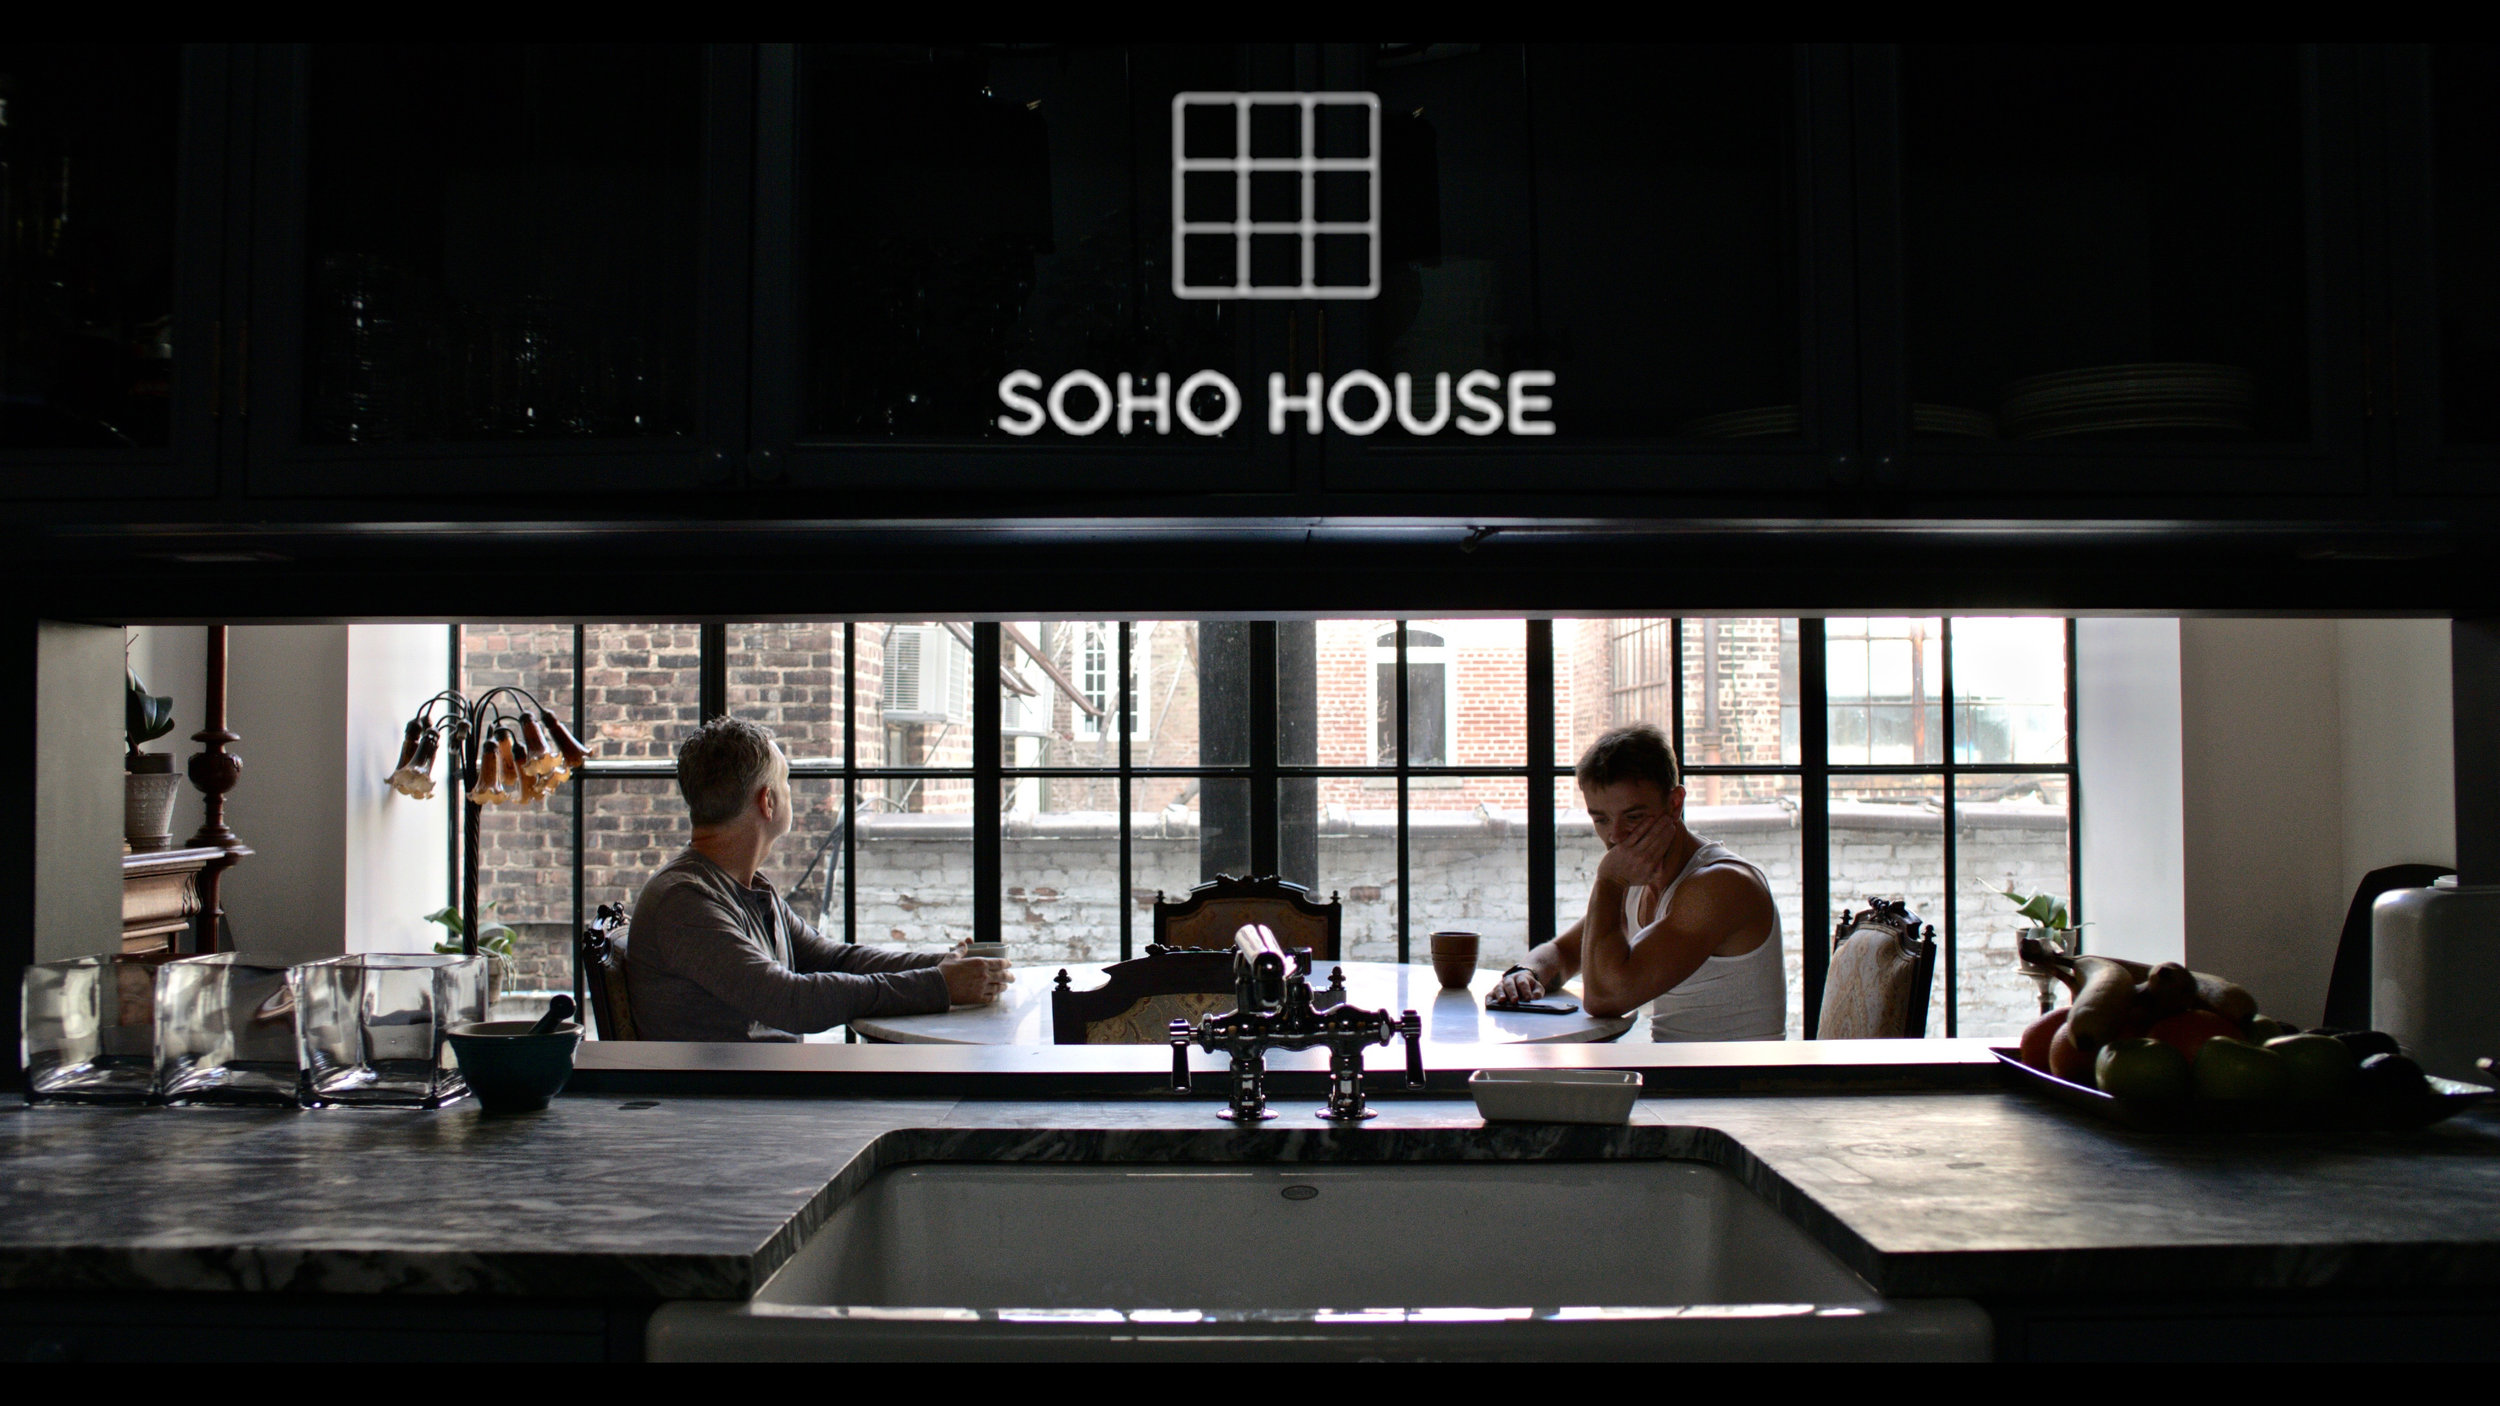 """LONDON PREMIERE - London PremiereSoho HouseApril 21st, 2018""""Trophy Boy is the film equivalent of accidentally opening the front-facing camera on your phone while lying down, revealing your double chin. It shows us the real lives of these immaculately groomed people and the extreme lengths they go to for social media attention."""" – Review Avenue (UK)"""